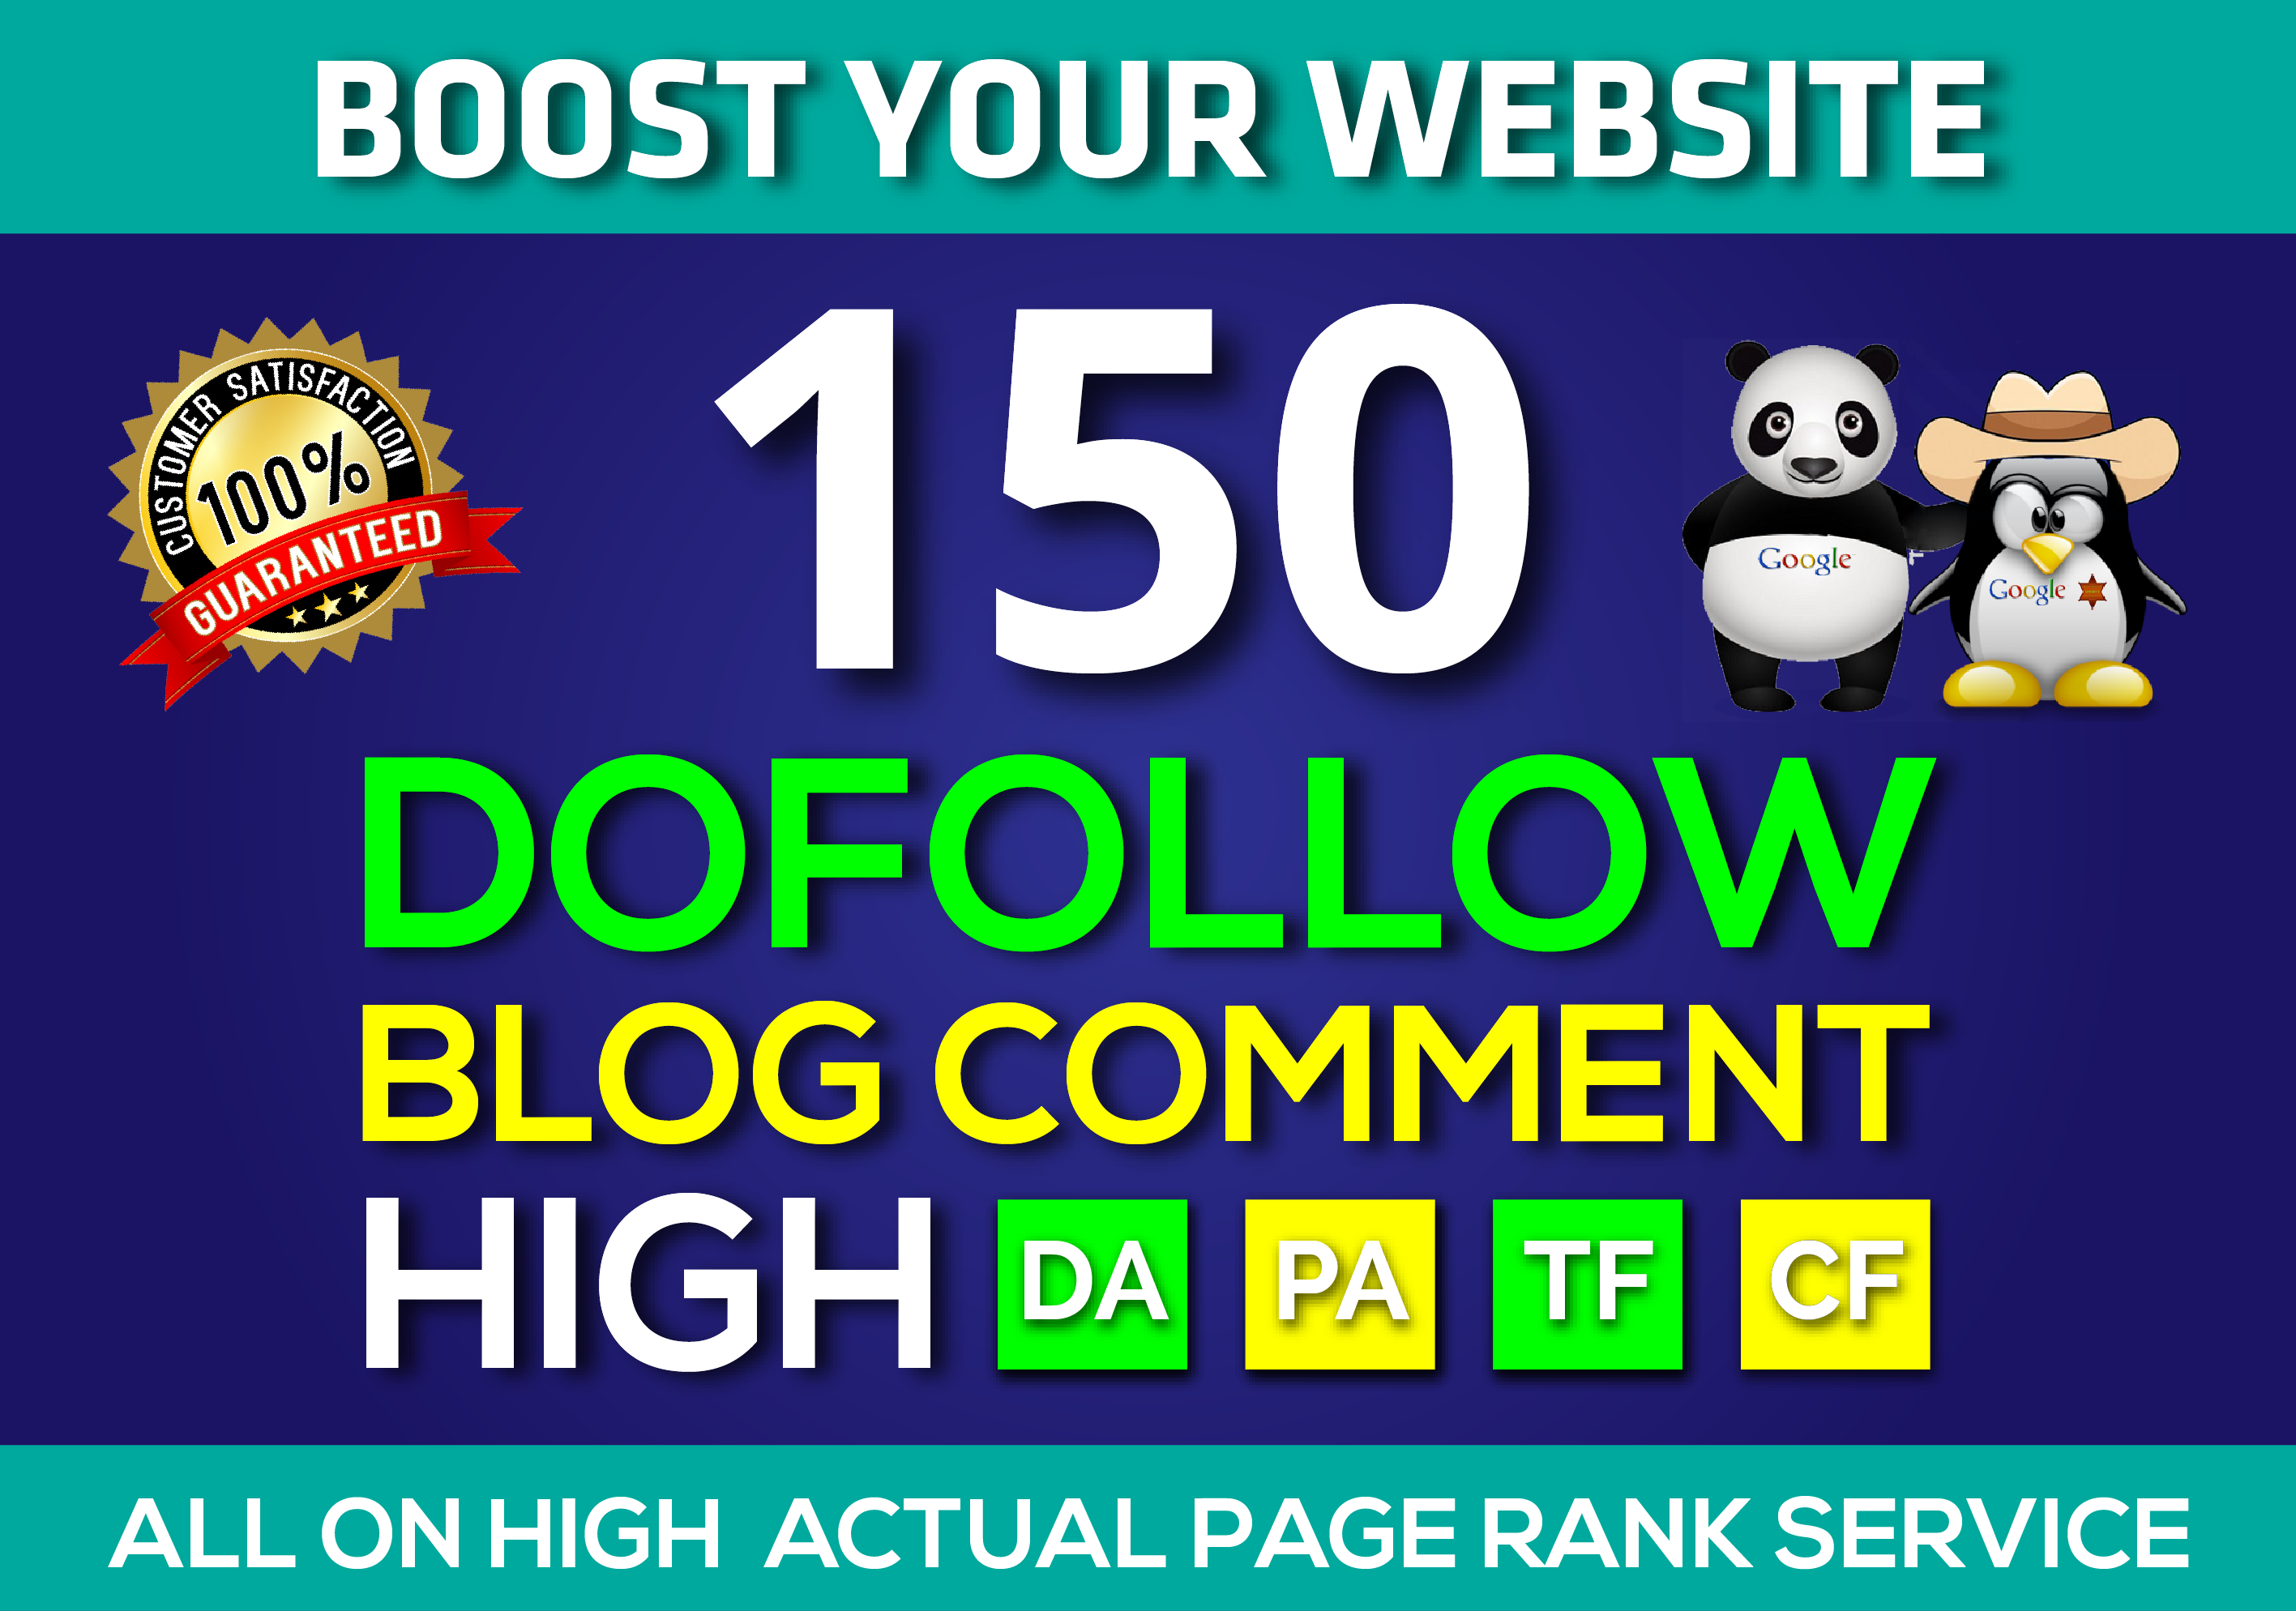 I will do 150 Dofollow Blog Comment Backlinks SEO LOW OBL